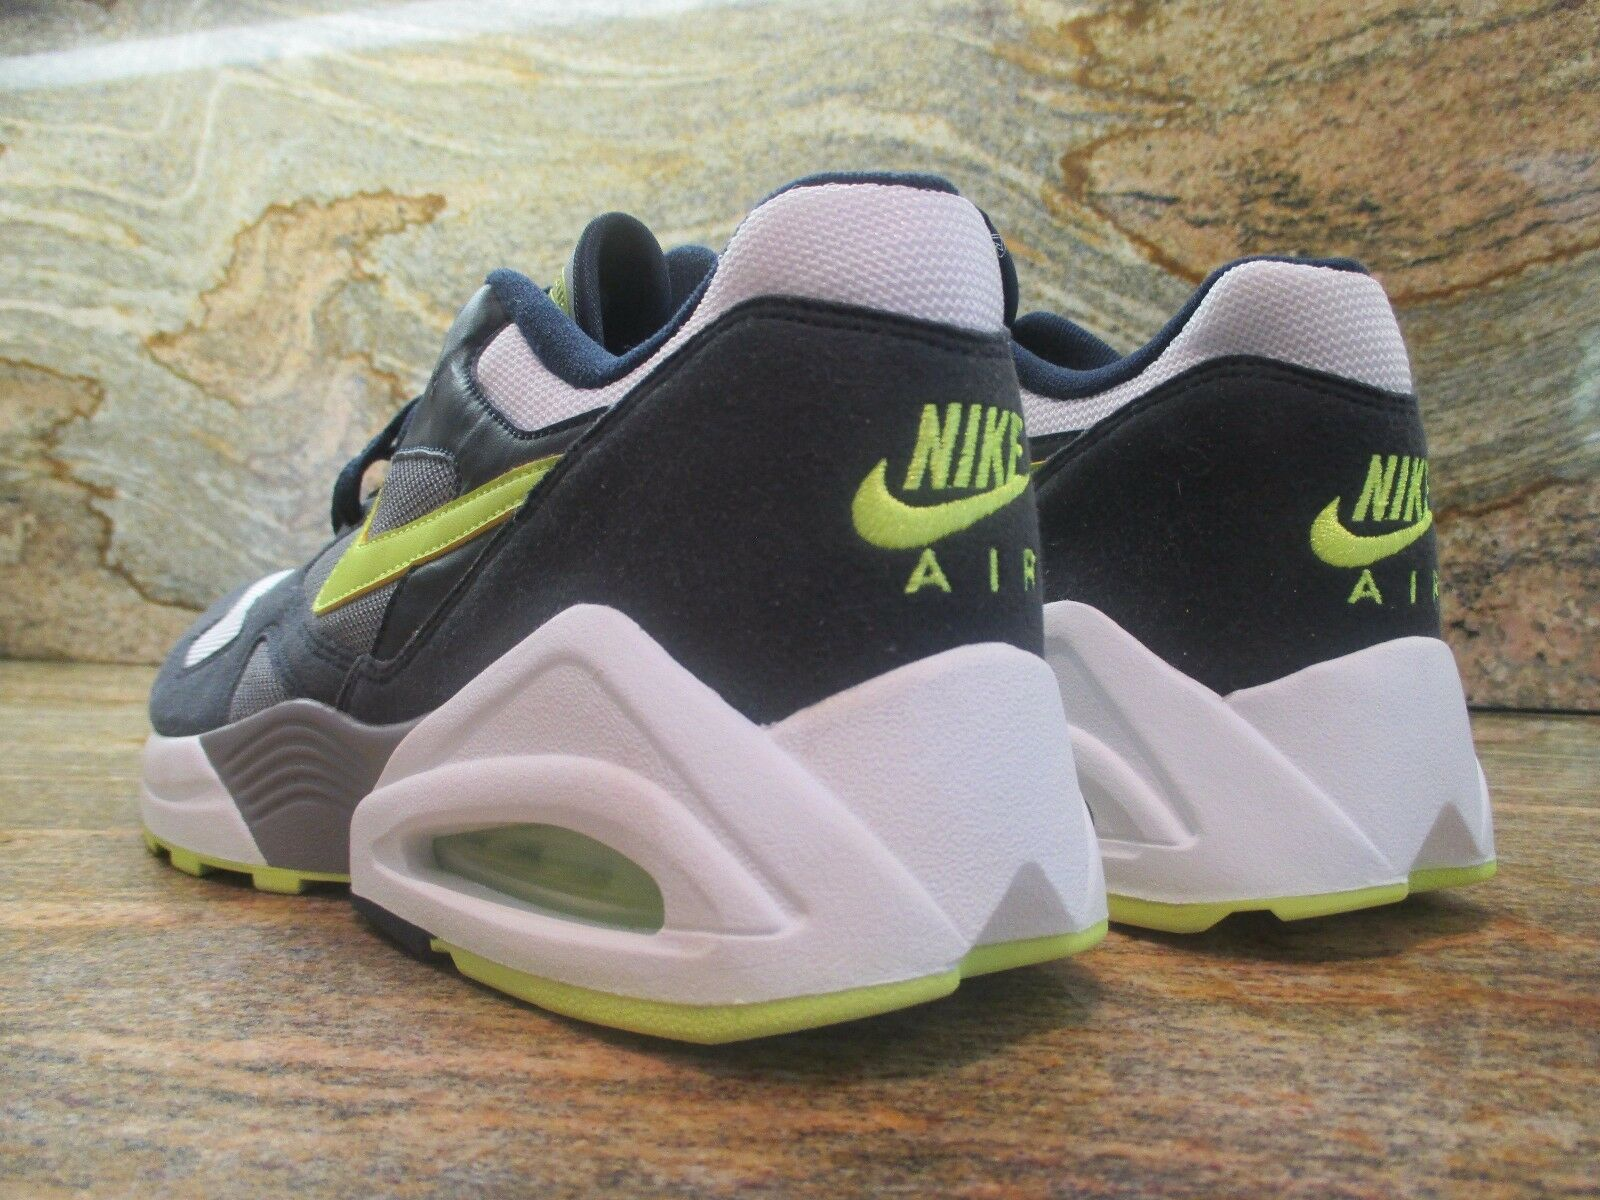 2008 Unreleased Unreleased Unreleased Nike Air Max Tailwind 92 OG Sample SZ 9 White Volt 336611-471 57b5d8